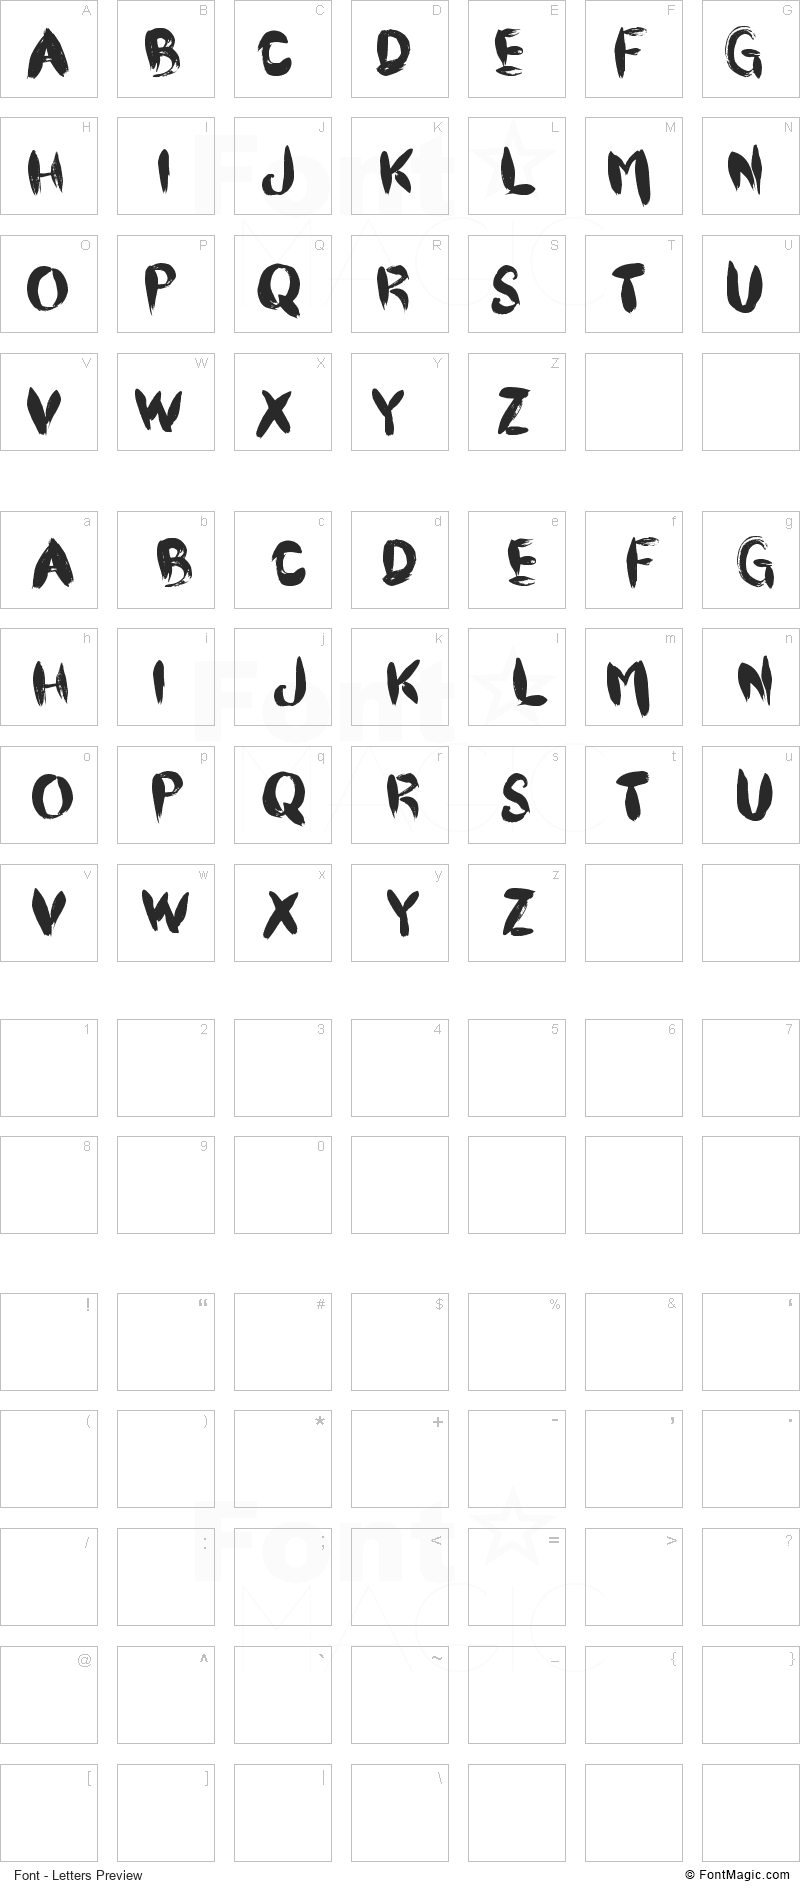 CF Pinceau Font - All Latters Preview Chart